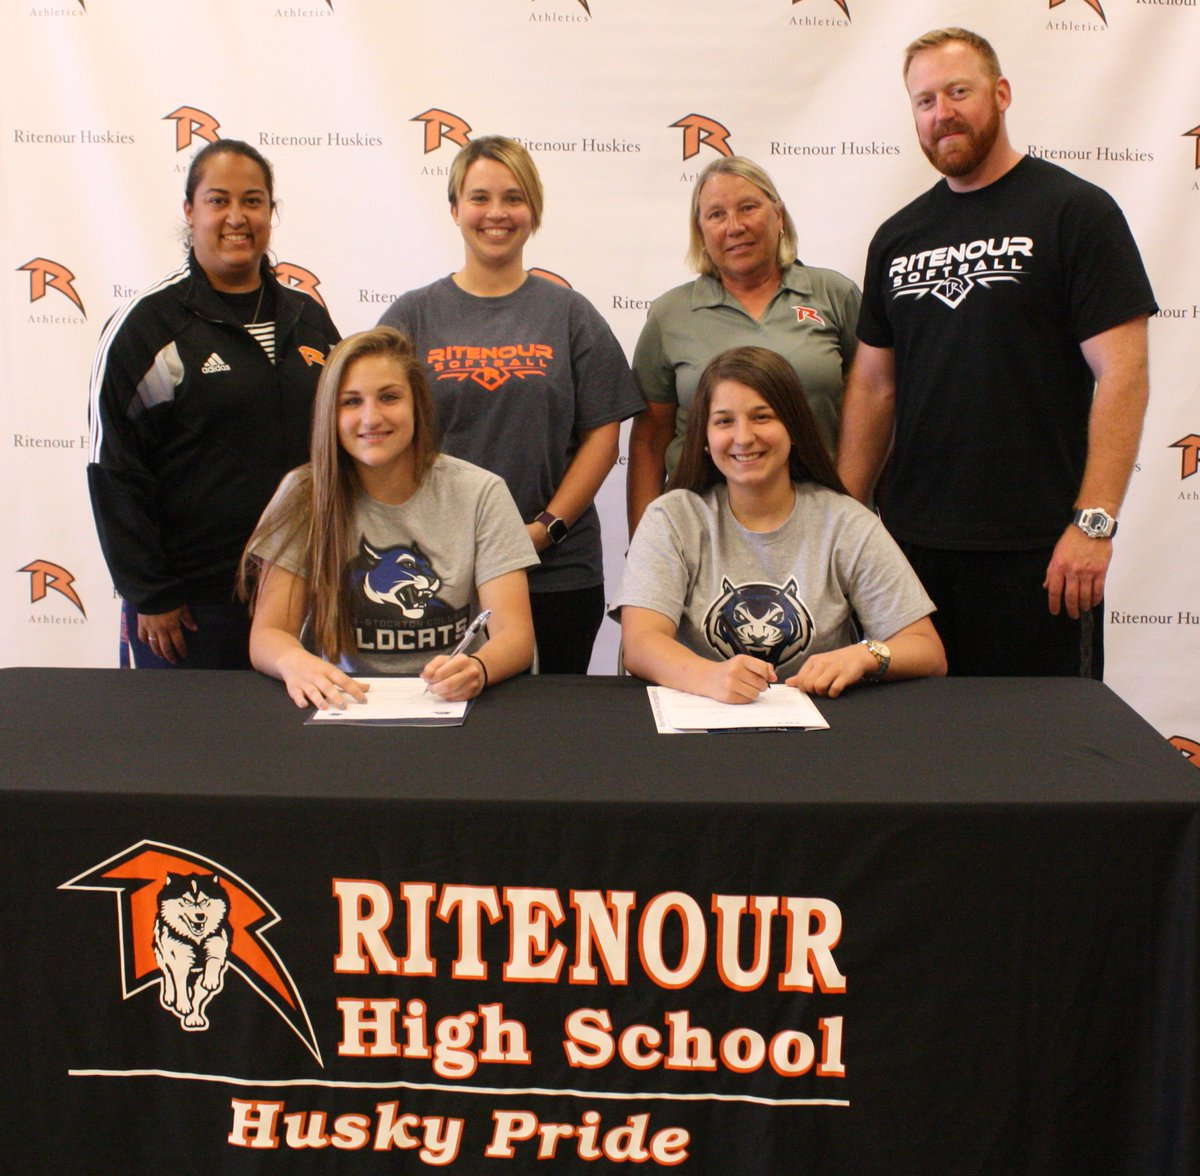 Hu huskies athletics - Ritenour Schools On Twitter Congrats To Rhs Huskies Andrea Wanta Shelby Beile Who Signed To Continue Their Softball Careers In College